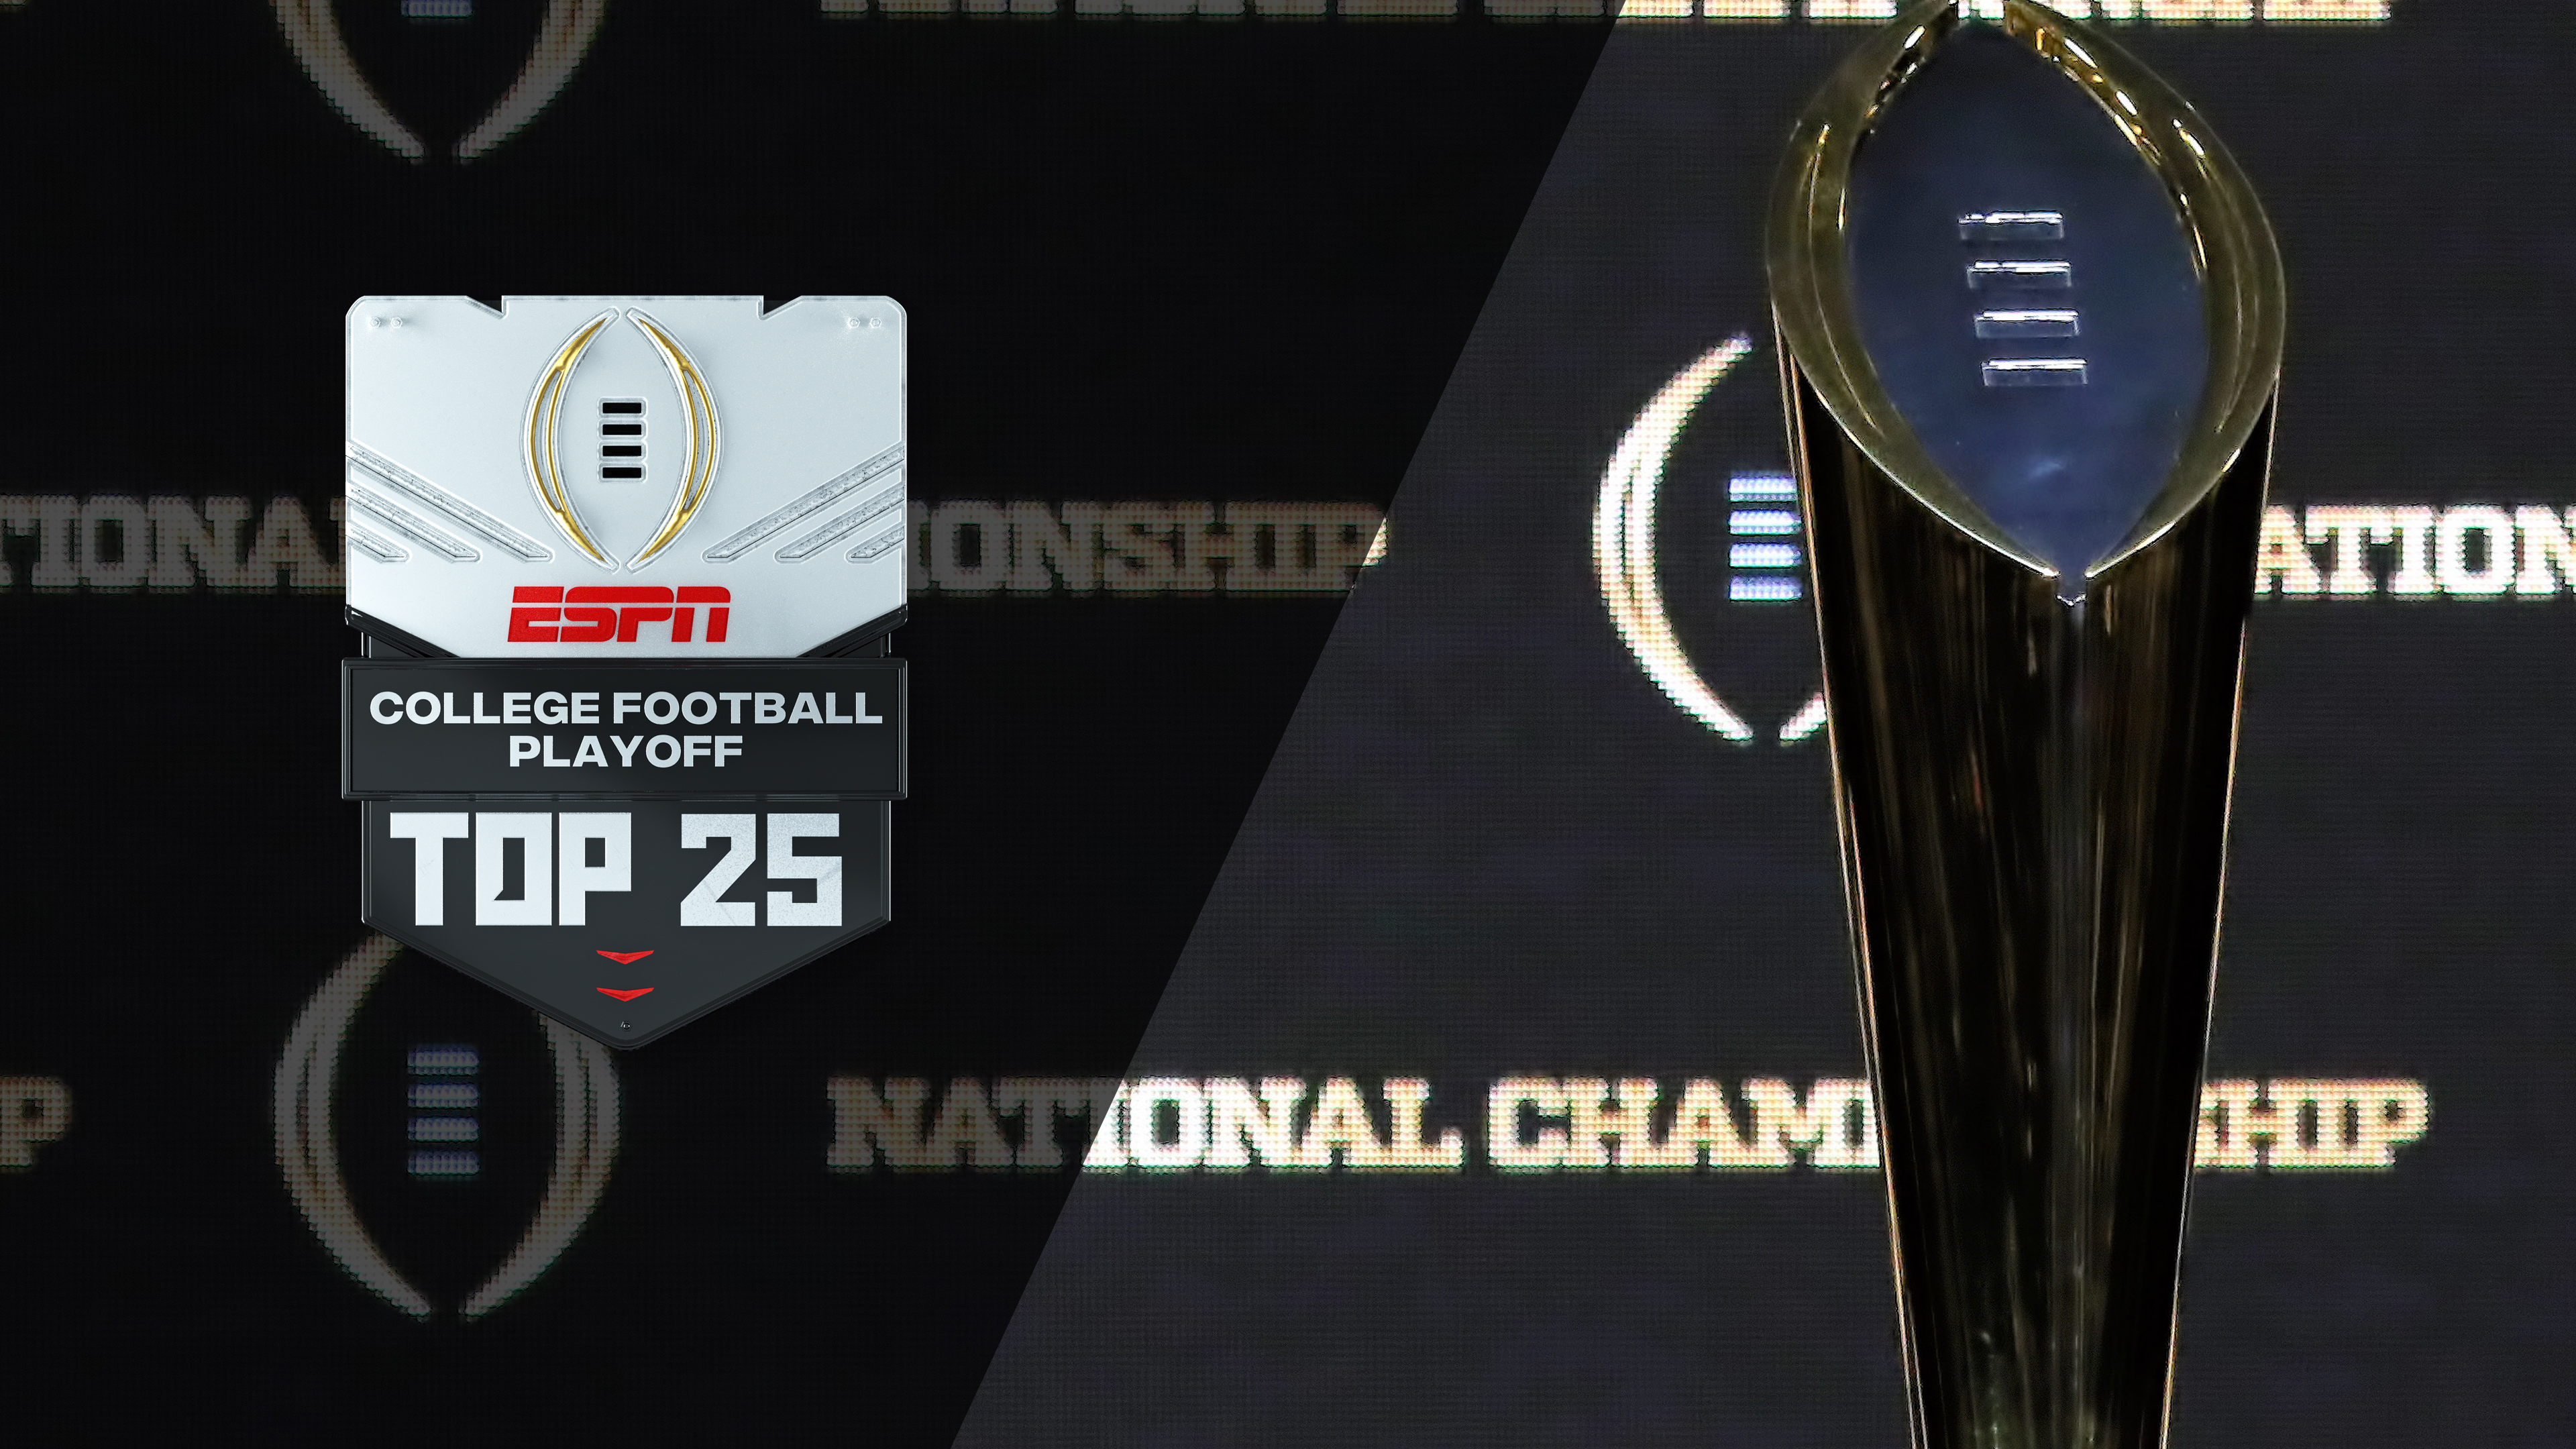 Tue, 11/13 - College Football Playoff: Top 25 Presented by Goodyear